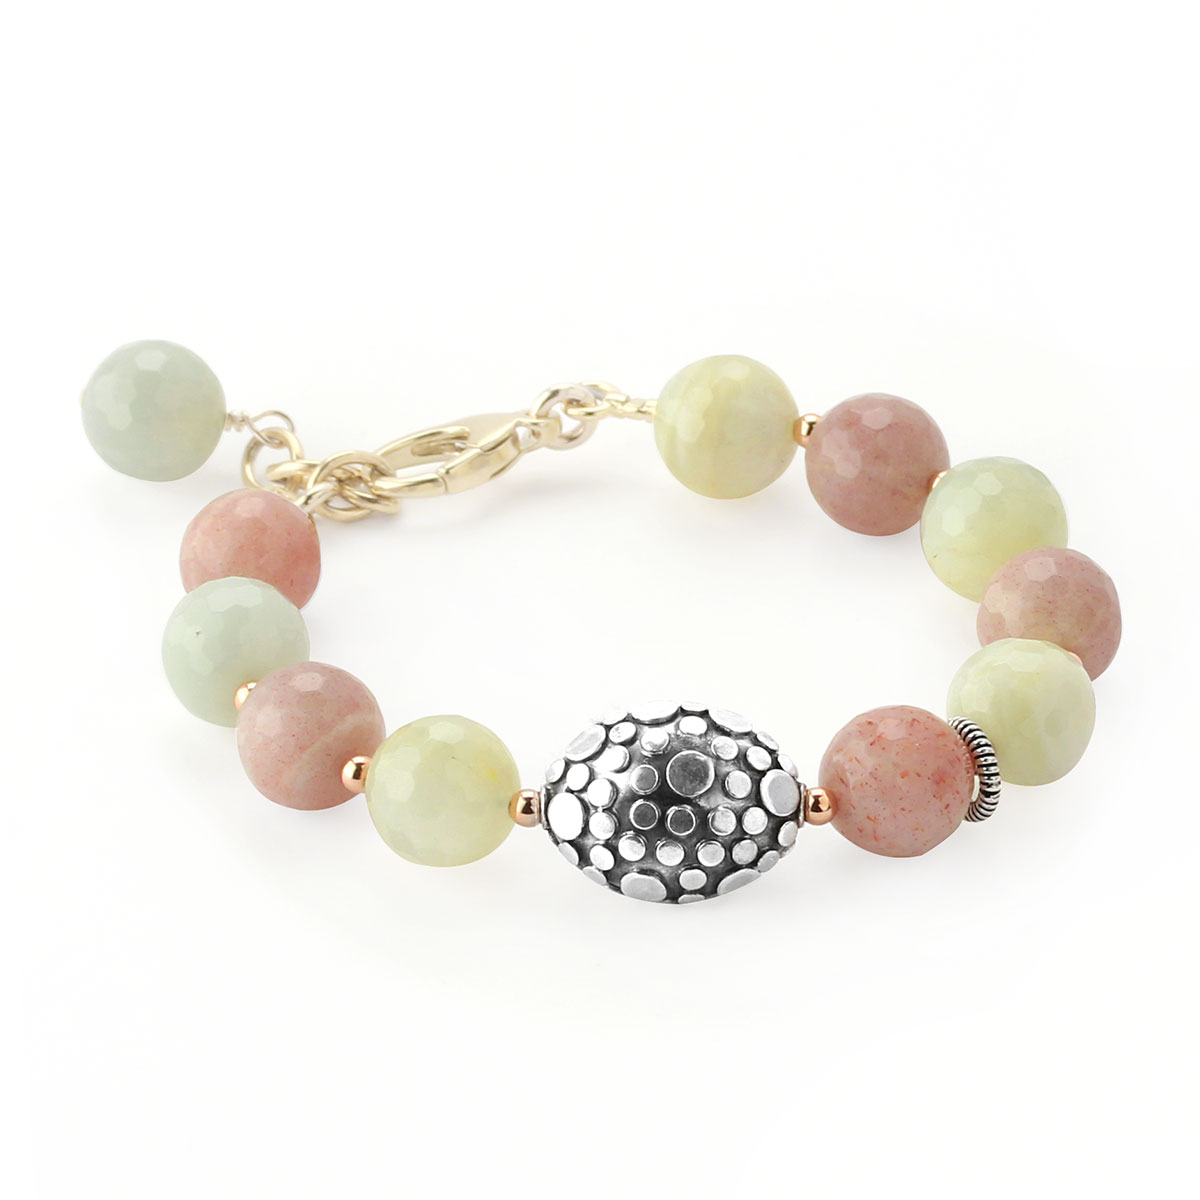 348696-Lollies Textured Sterling Silver and Quartz Bracelet